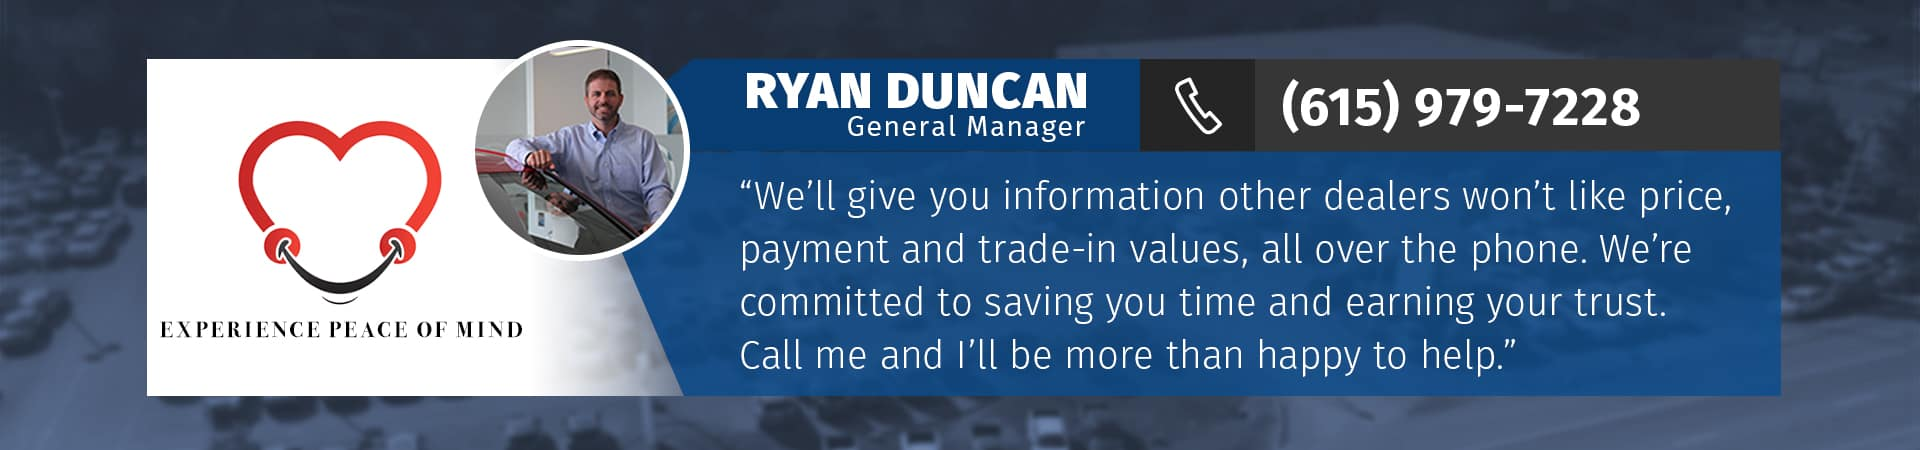 Call Ryan Duncan, GM at Murfreesboro Hyundai Volkswagen, at 615-979-7228 in Murfreesboro TN